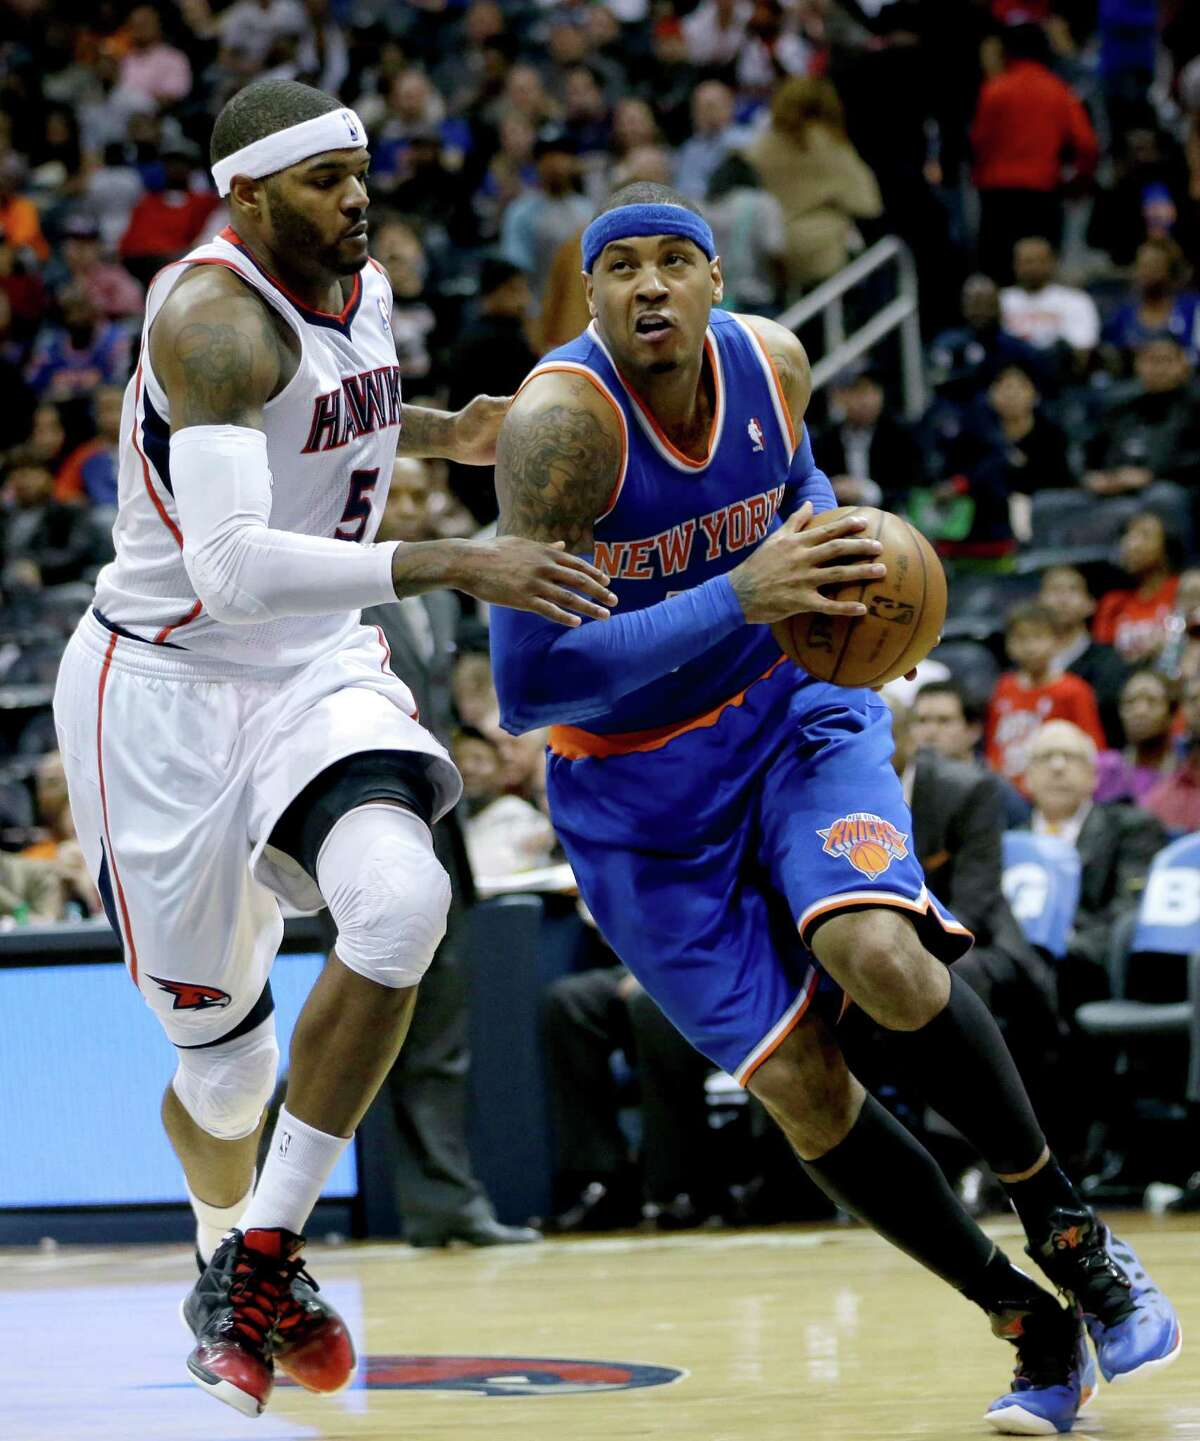 New York Knicks' Carmelo Anthony, right, drives to the hoop against the defense of Atlanta Hawks' Josh Smith in the fourth quarter of an NBA basketball game, Wednesday, April 3, 2013, in Atlanta. New York won 95-82. (AP Photo/David Goldman)